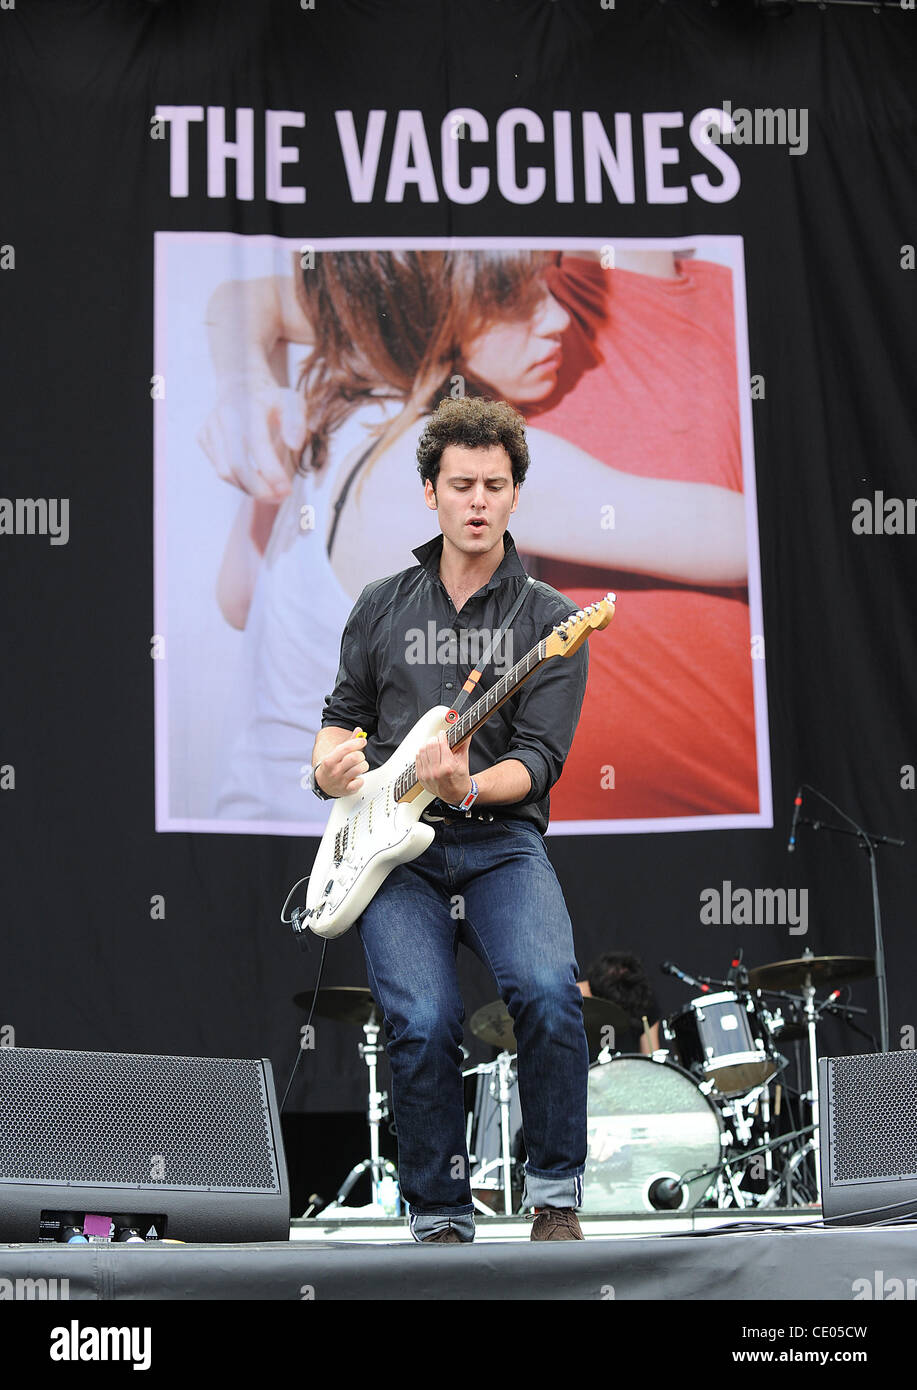 Aug 5, 2011 - Chicago, Illinois; USA - Guitarist FREDDIE COWAN of the band The Vaccines performs live as part of - Stock Image